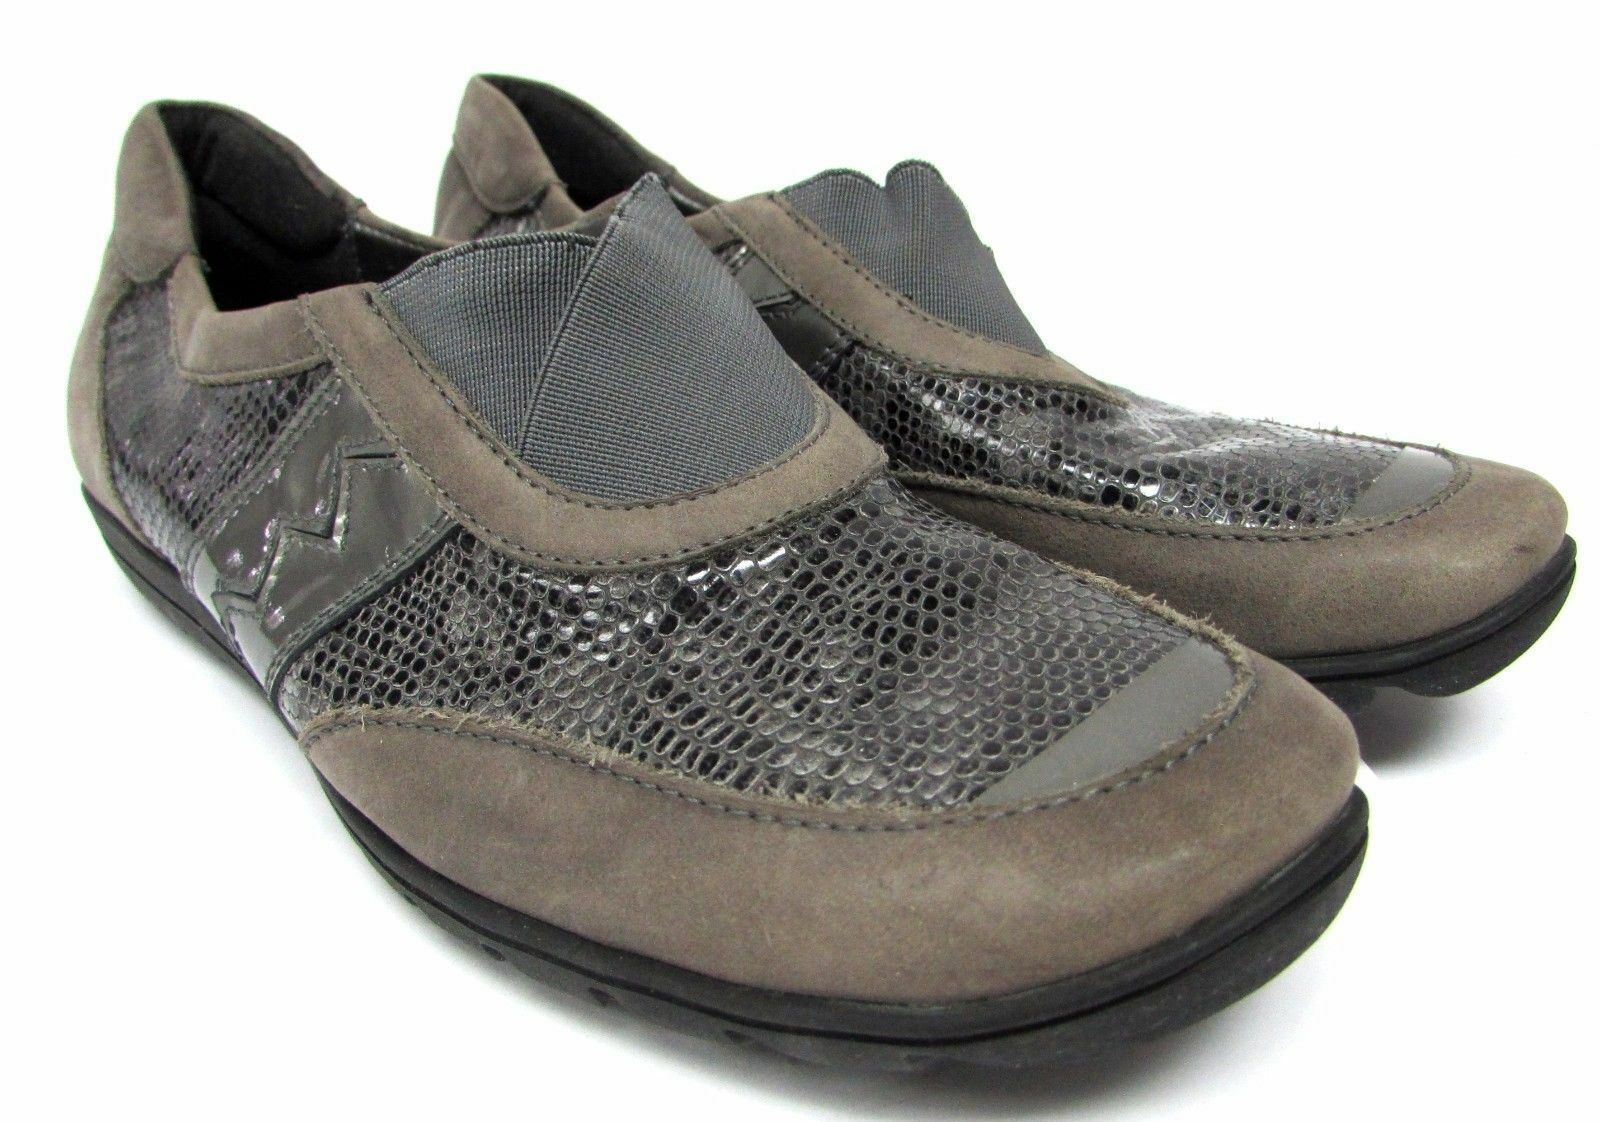 Sesto Meucci women's size 6 gray grey loafers comfort shoes flats hovercraft sol